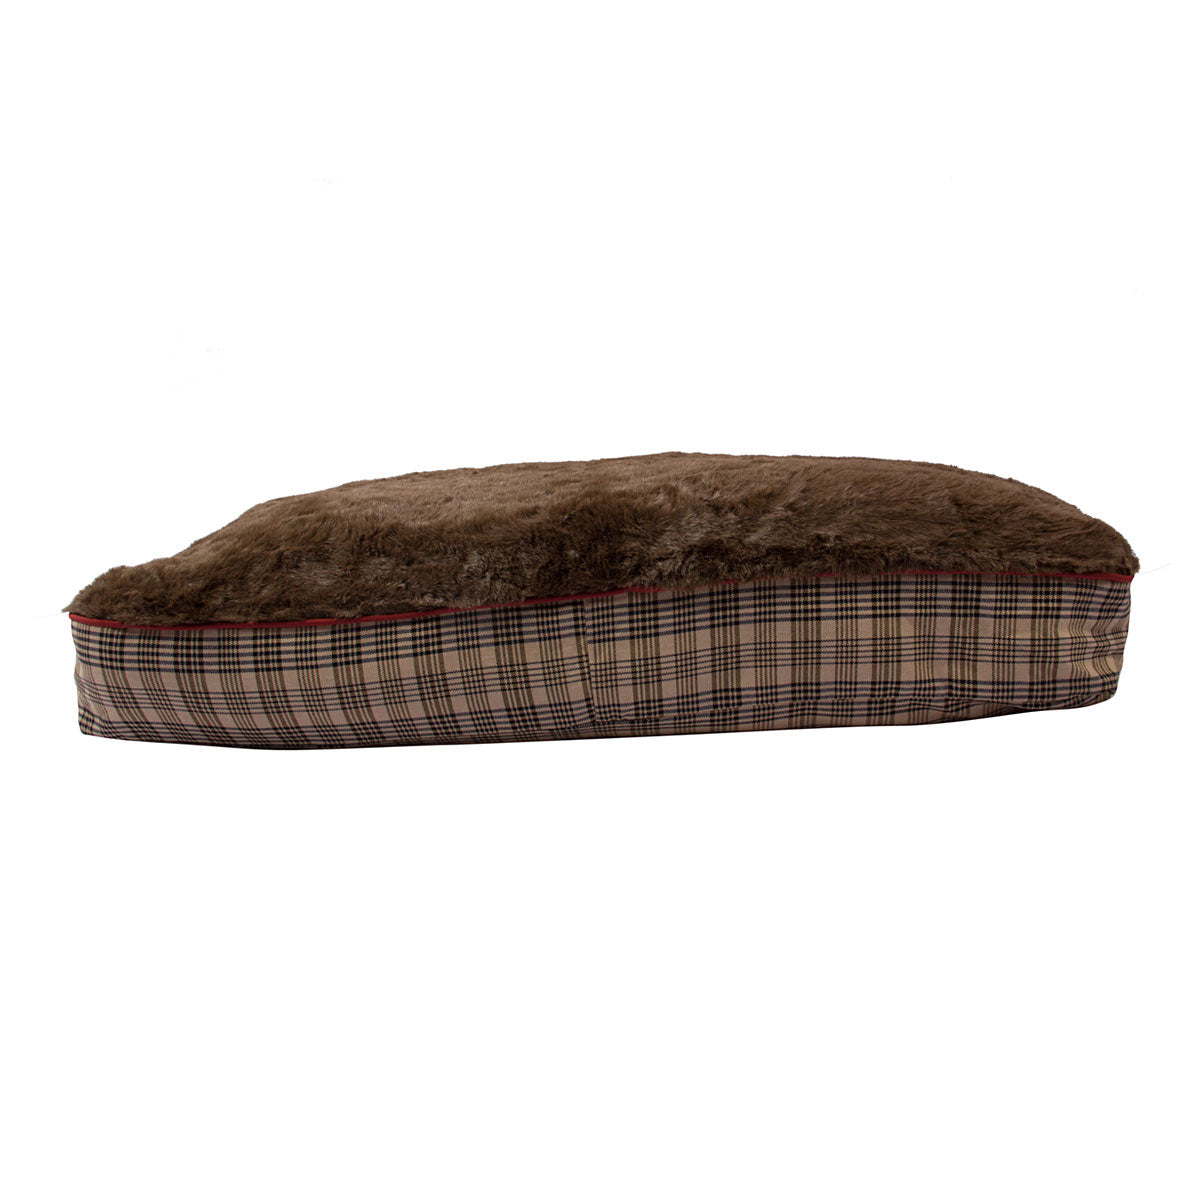 5/A Baker Plaid Rectangular Dog Bed - 5/A Baker - Breeches.com